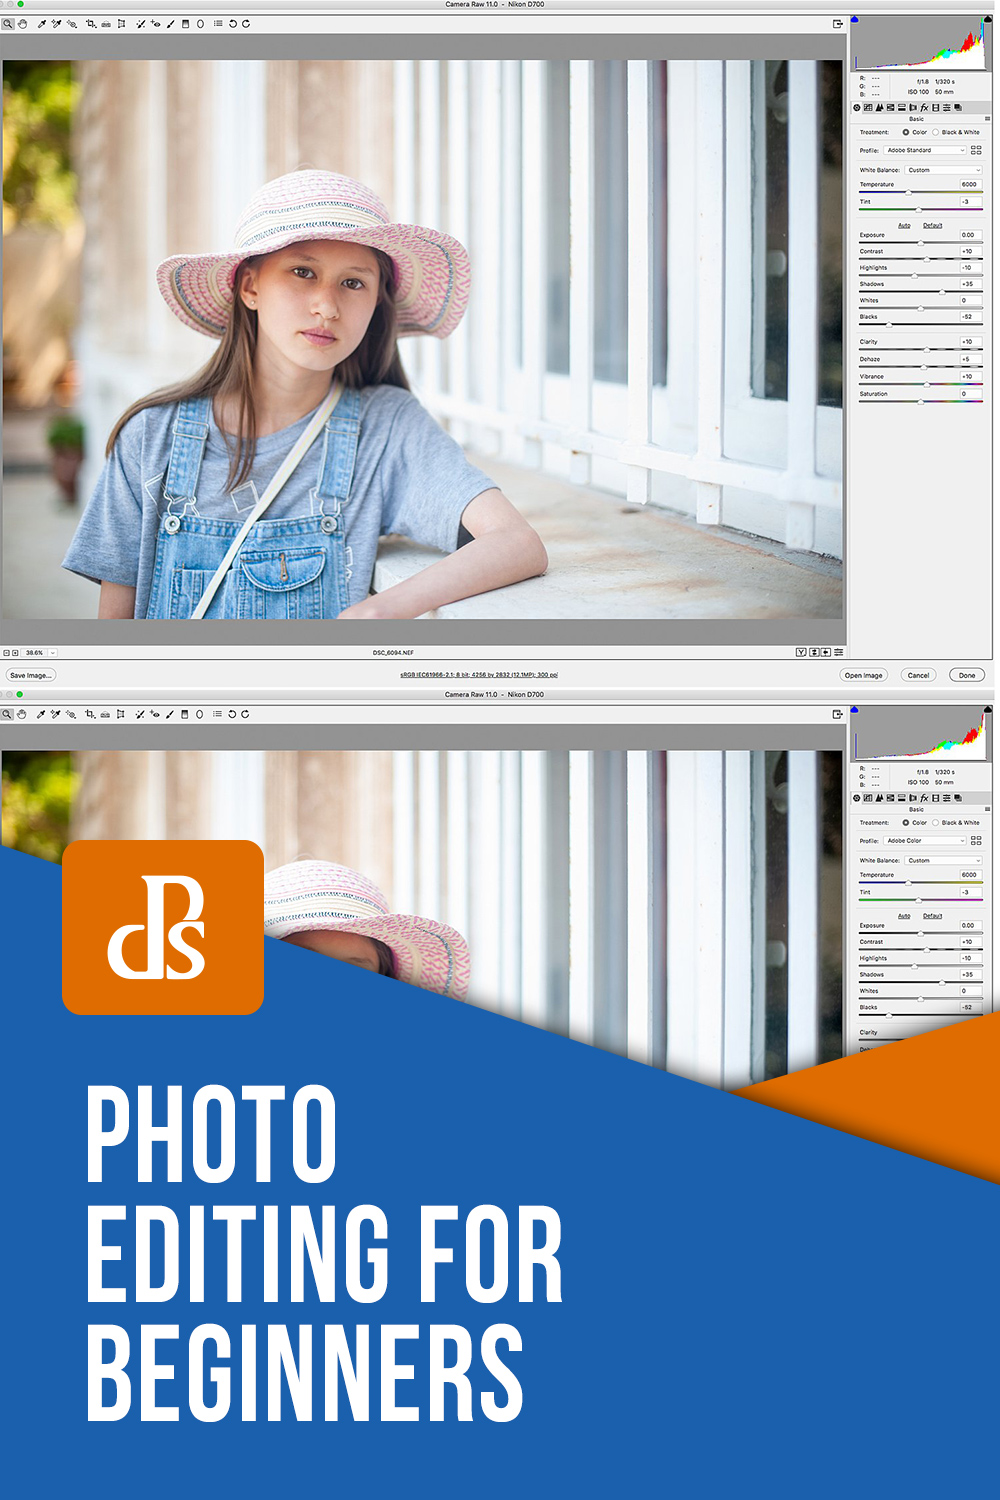 A Short Introduction to Basic Photo Editing for Beginners